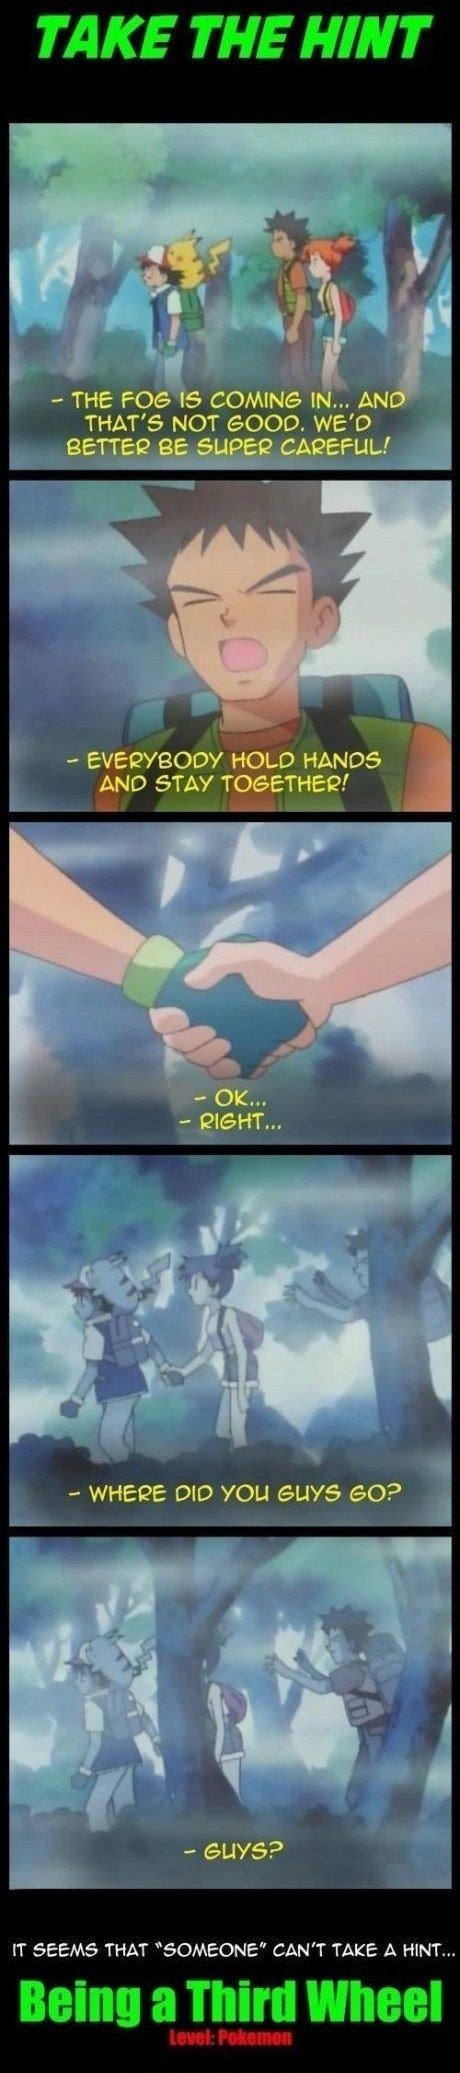 Take a hint Brock! // funny pictures - funny photos - funny images - funny pics - funny quotes - #lol #humor #funnypictures